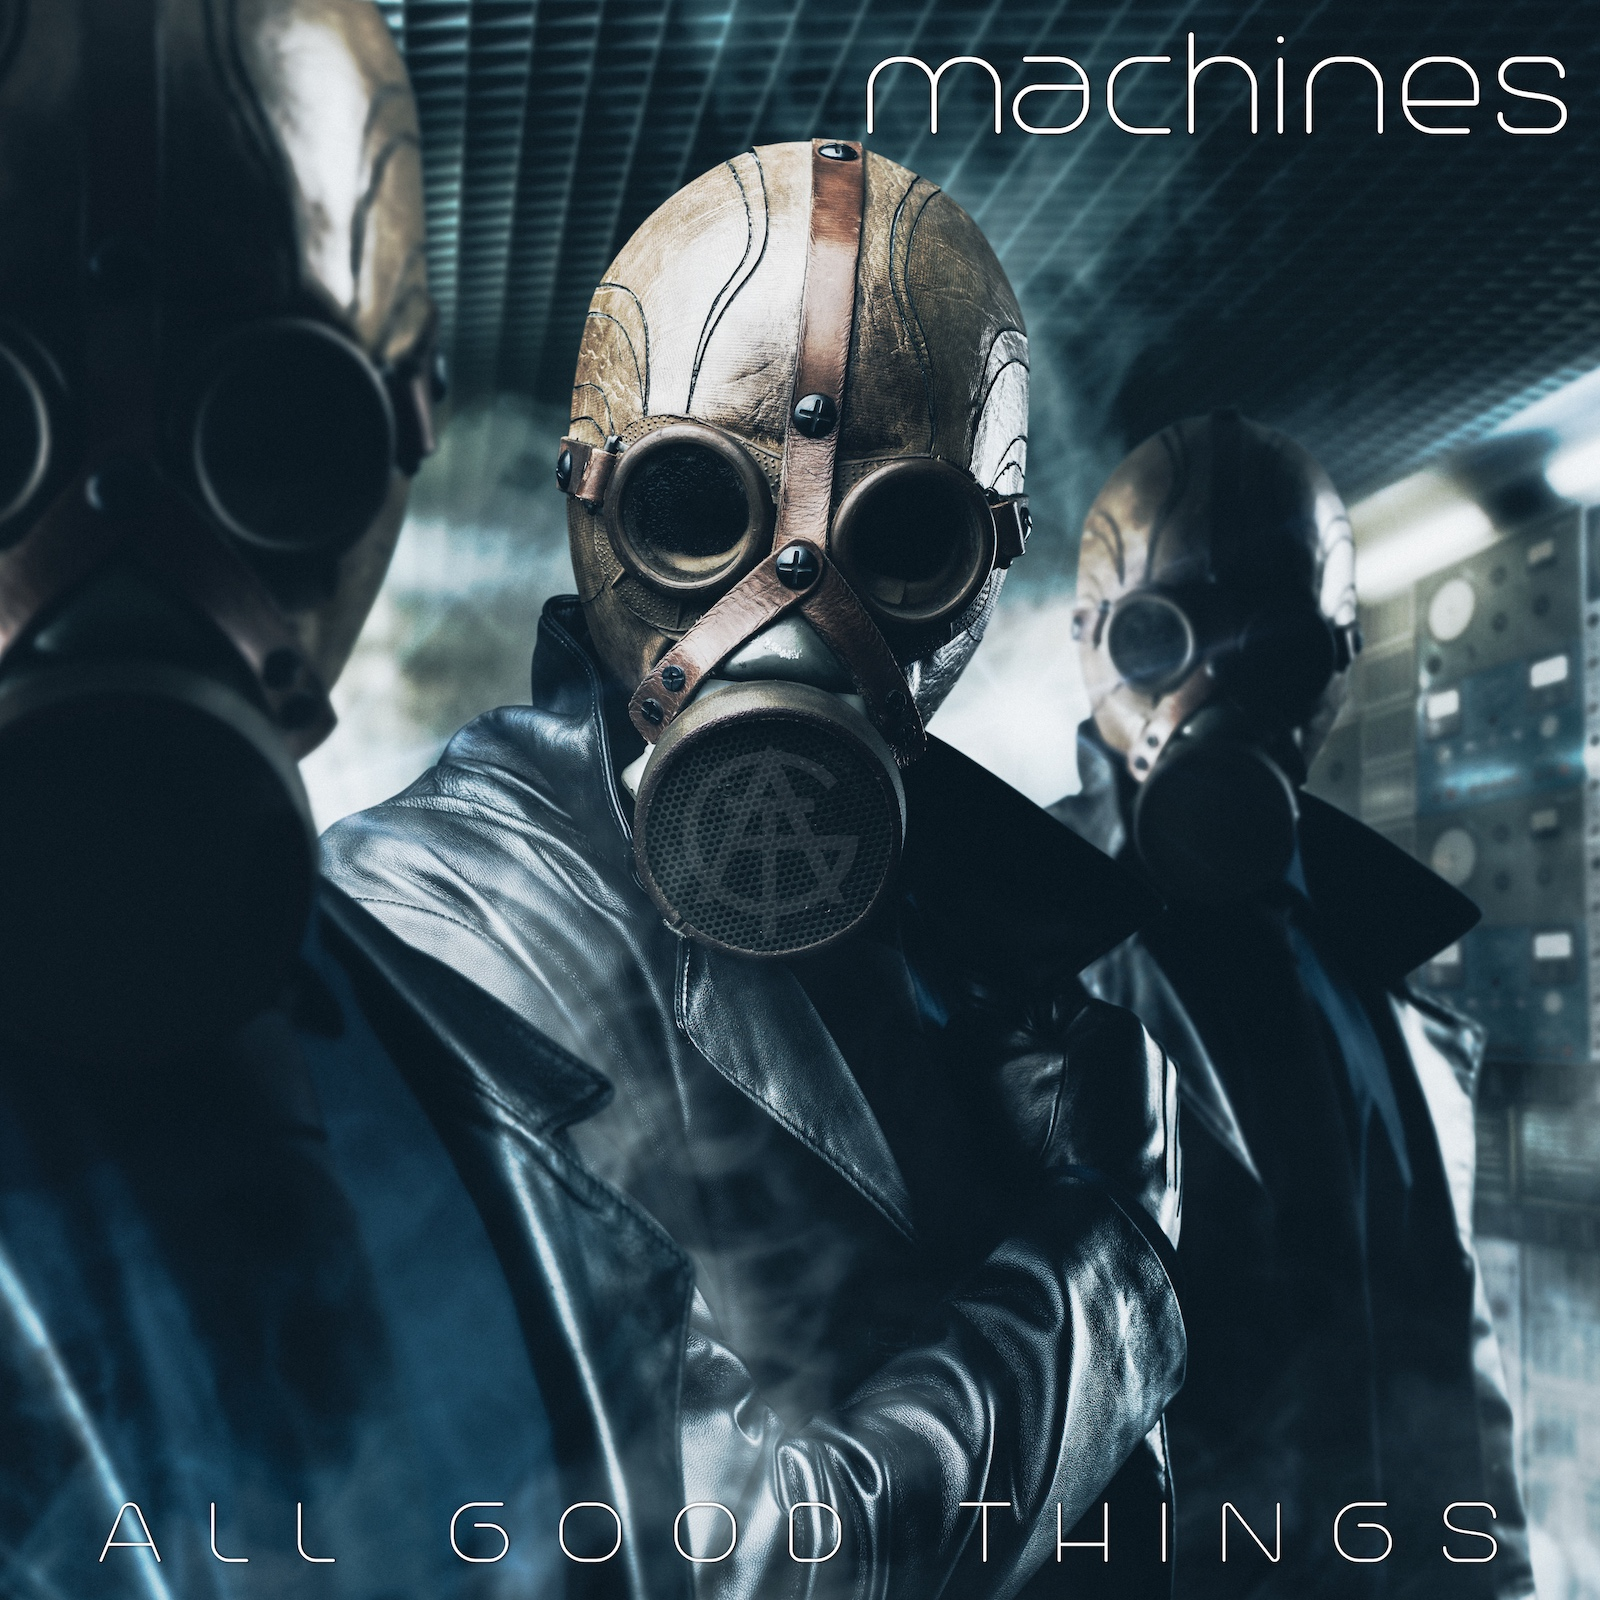 All Good Things - MACHINES - Album Cover 1600